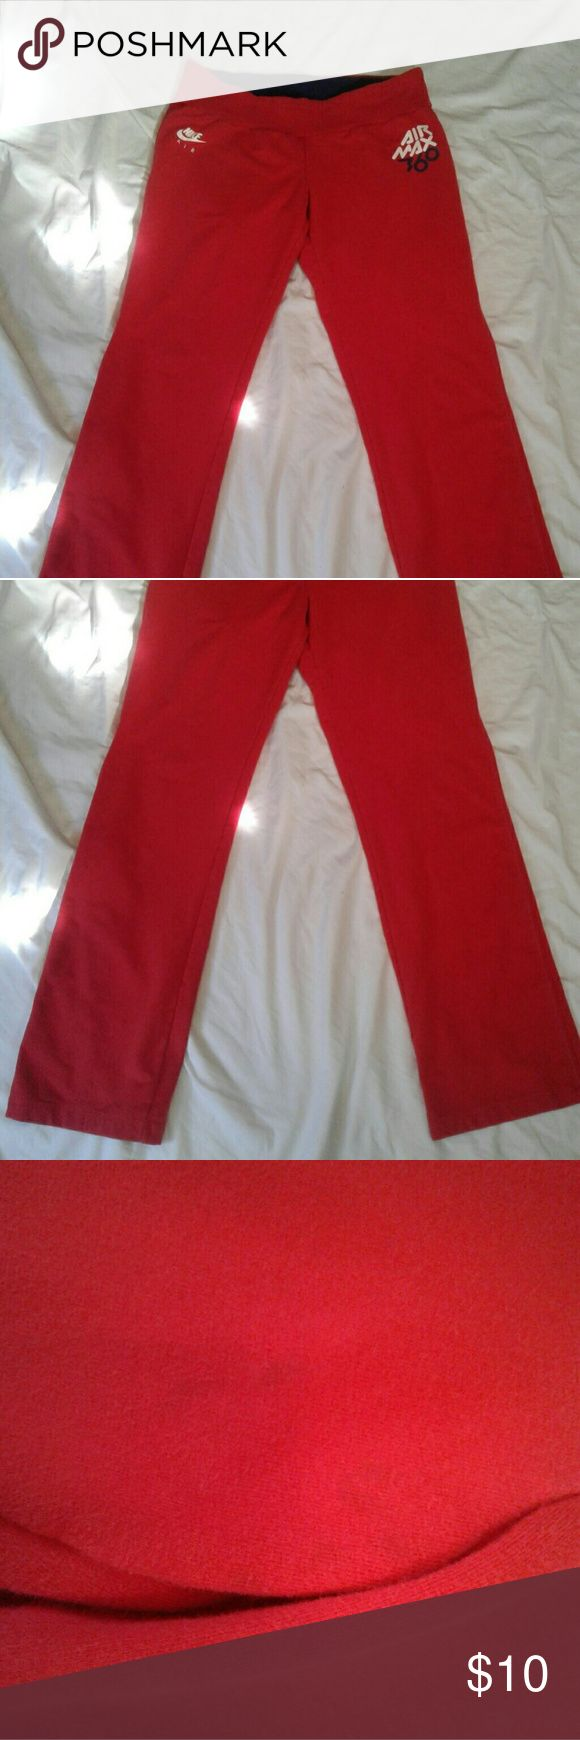 NIKE AIR MAX 360 PANTS GREAT CONDITION   SIXE XL  SMALL NOT NOTICABLE MARK ON INNER RIGHT THIGH  BUT WANTED TO MENTION IT  INSEAM 32 Nike Pants Track Pants & Joggers